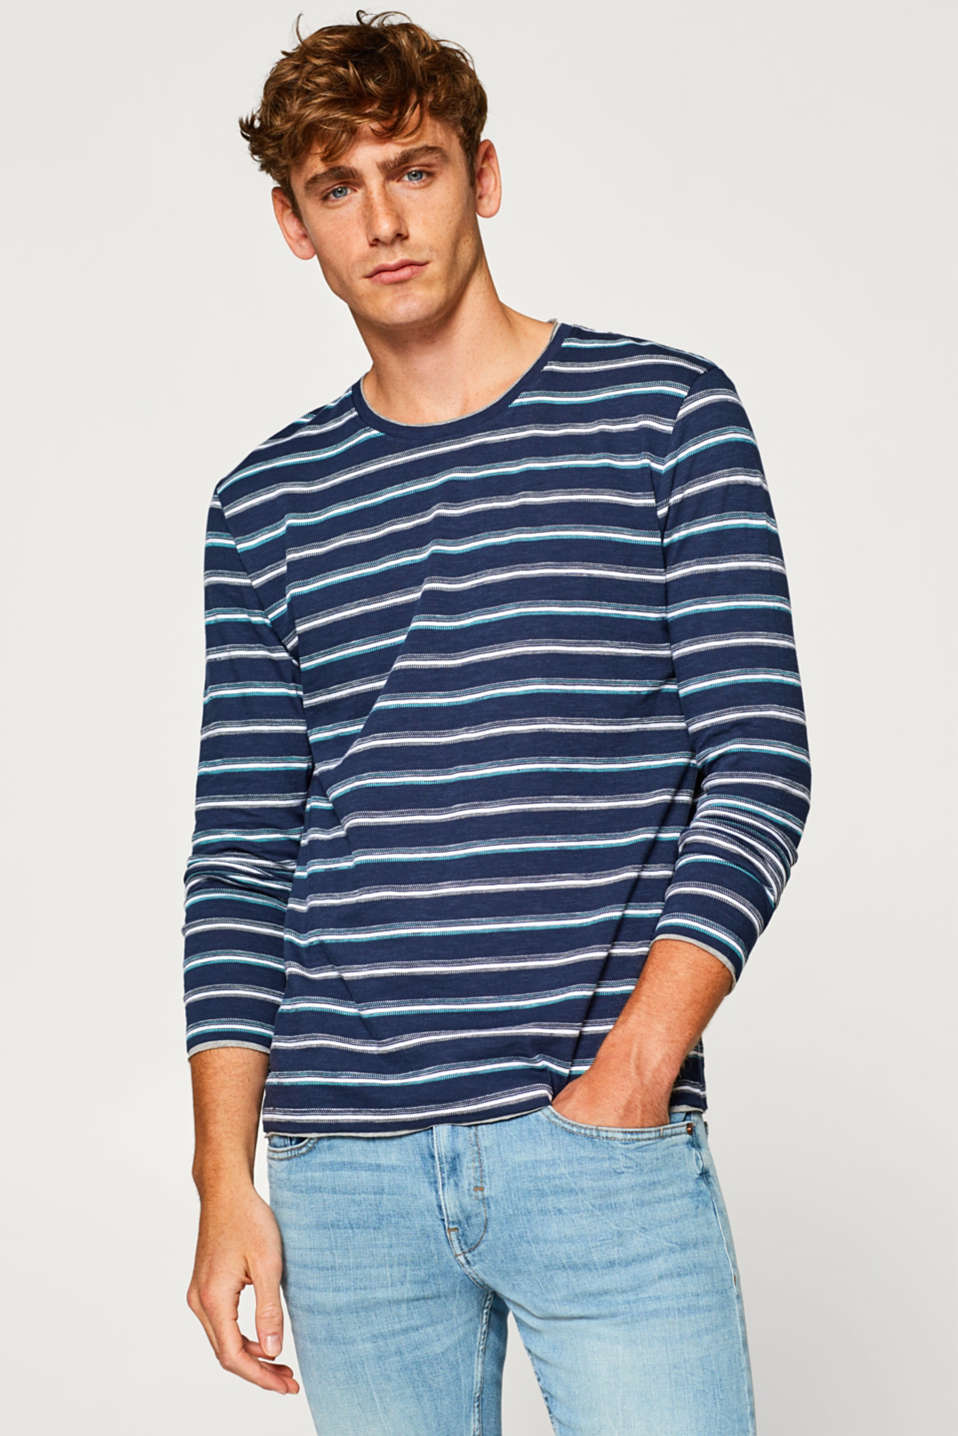 edc - Long sleeve top with textured stripes, made of jersey